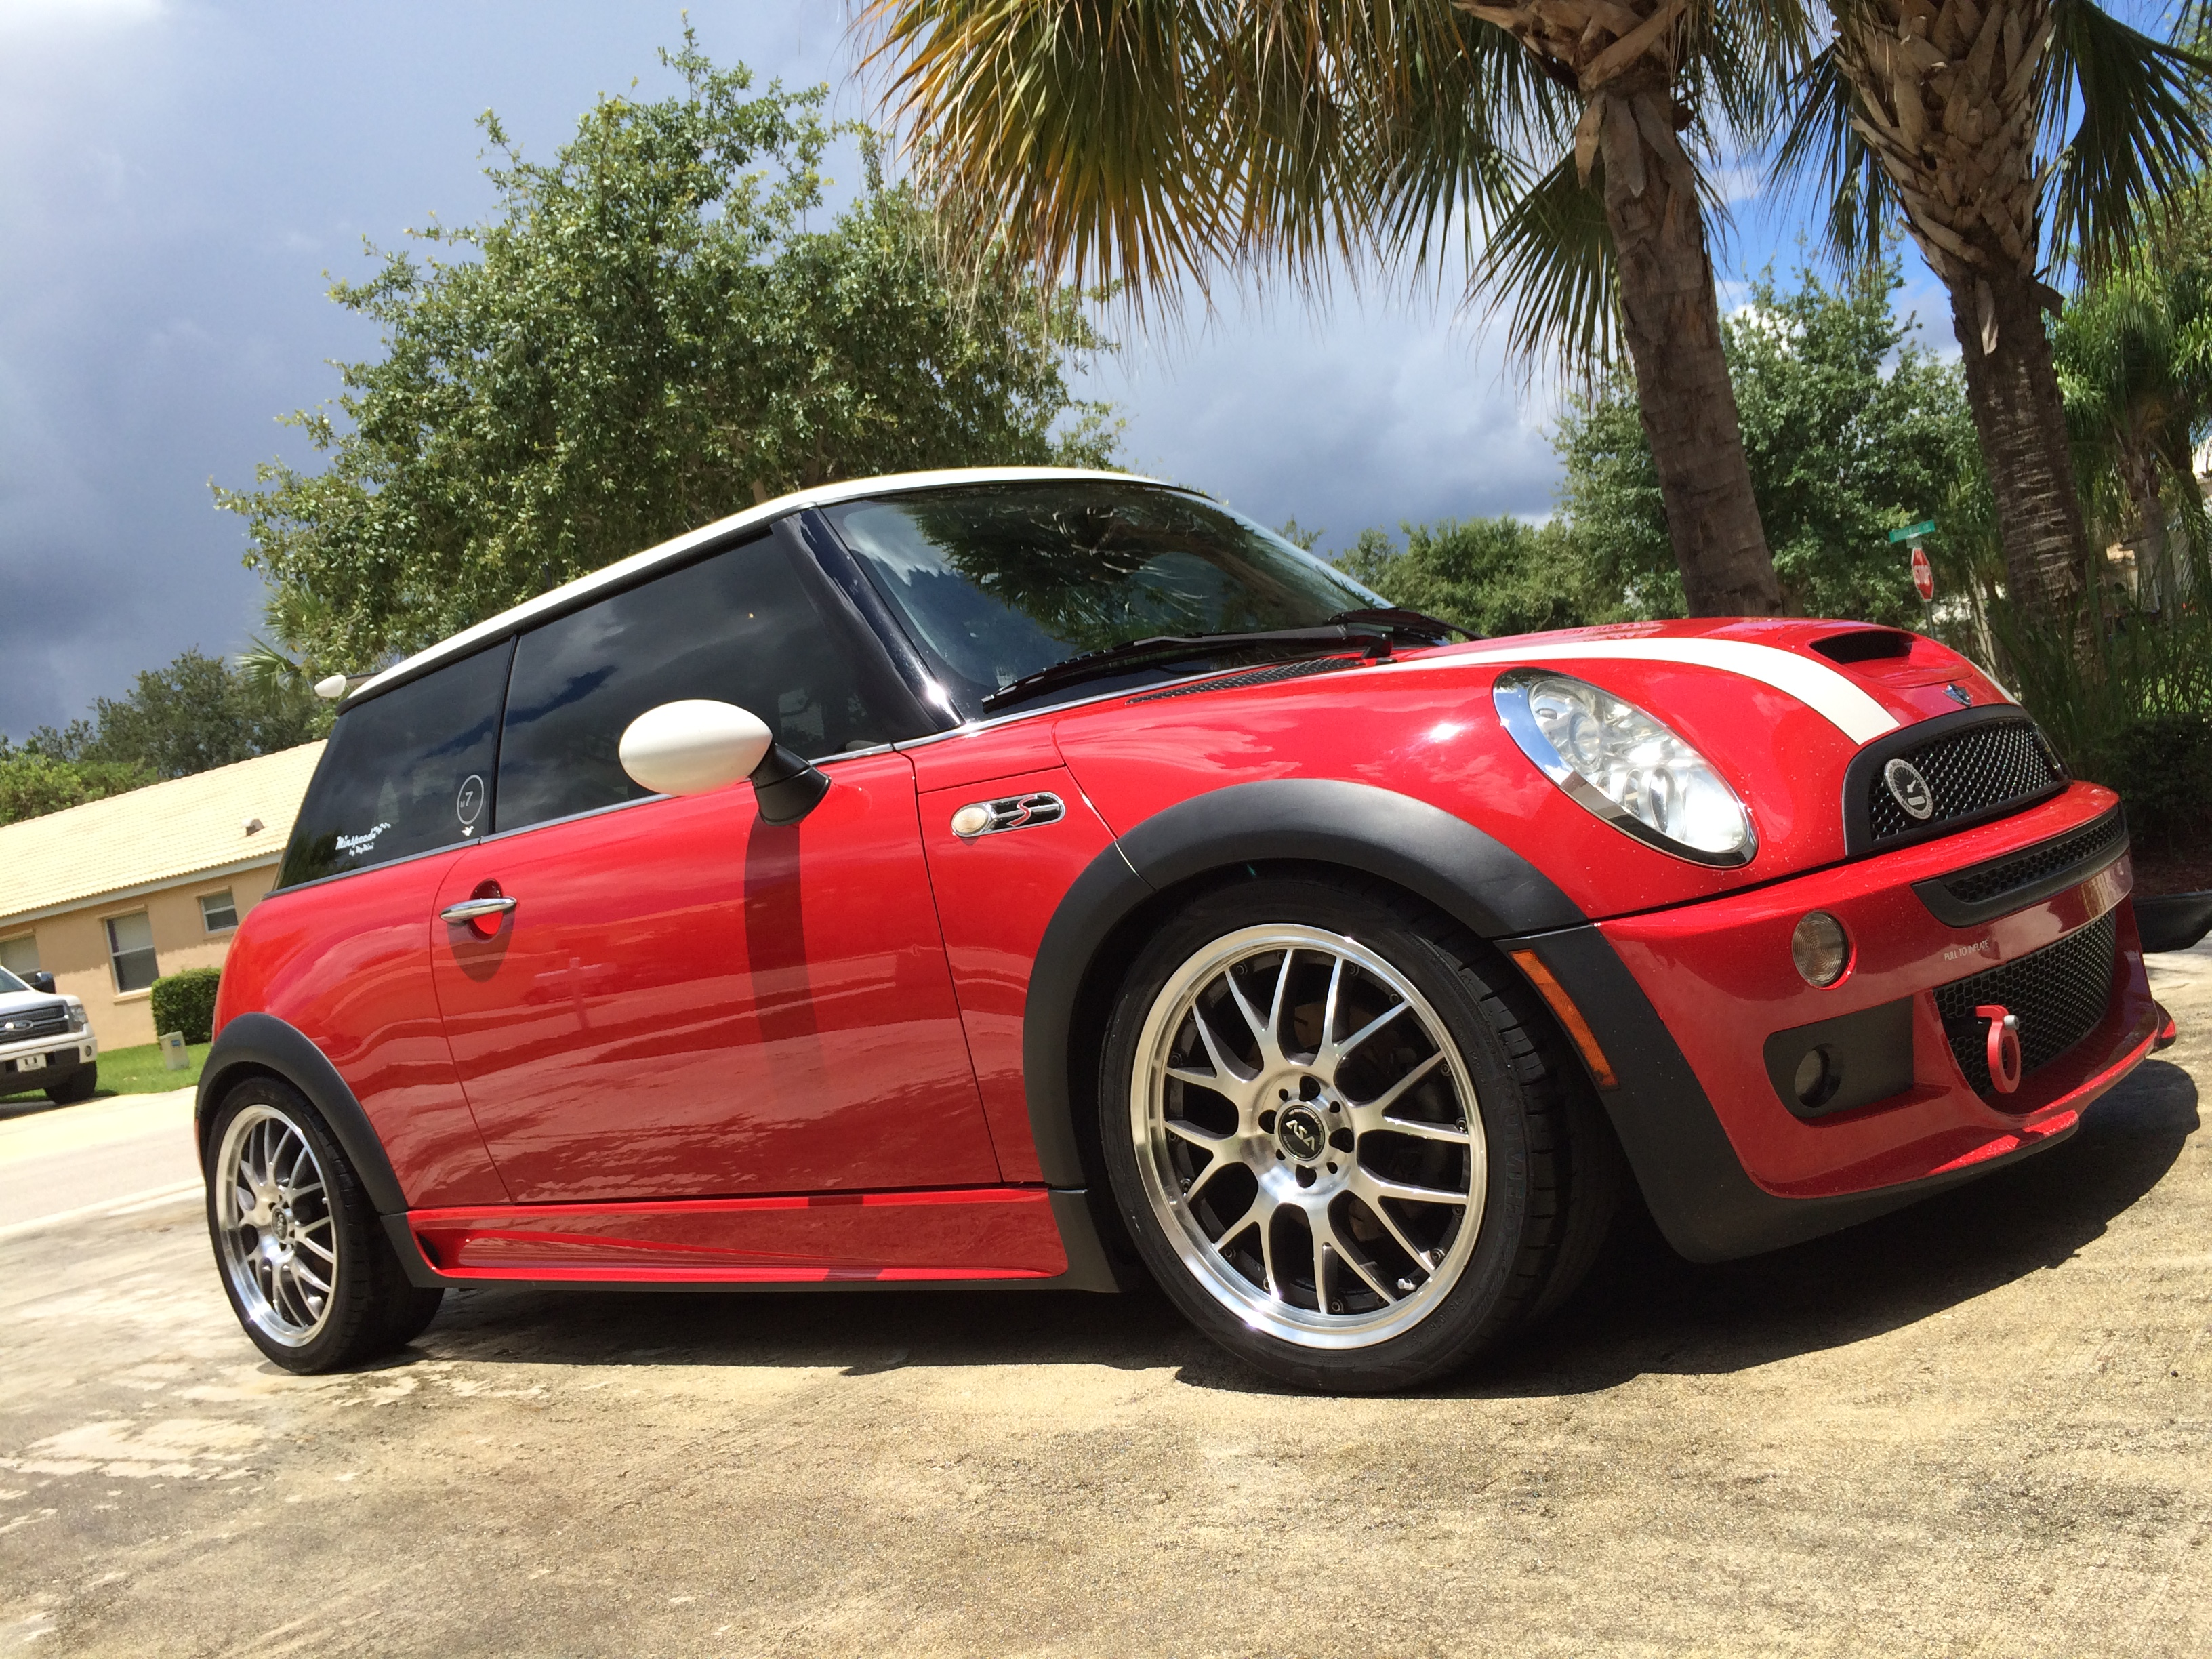 06 Mini Cooper S Reliability Thinking Of Buying A Mini Are They